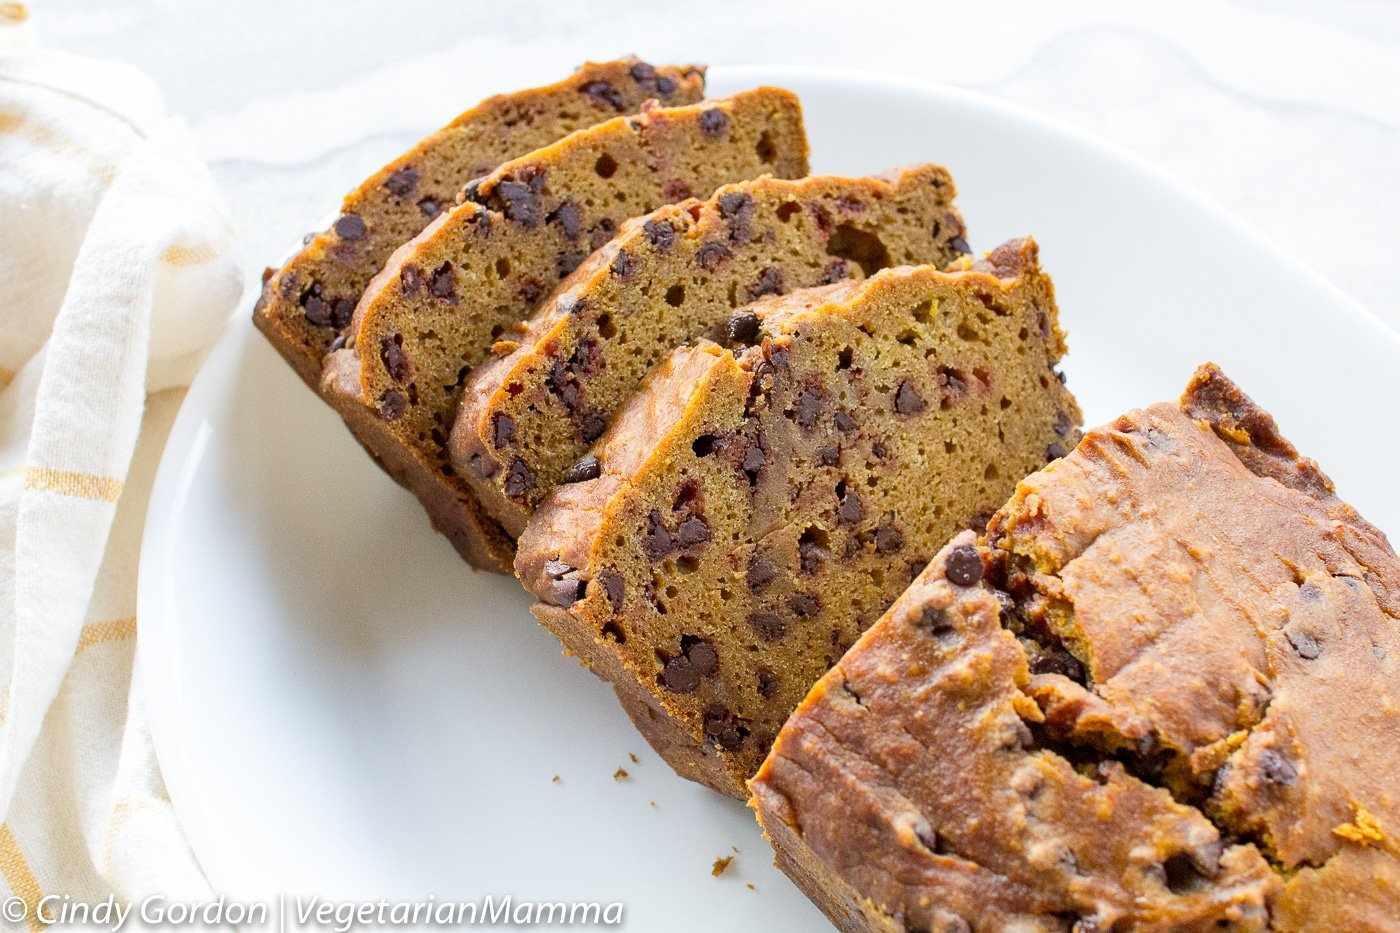 Gluten Free Chocolate Chip Pumpkin Bread is nut free.